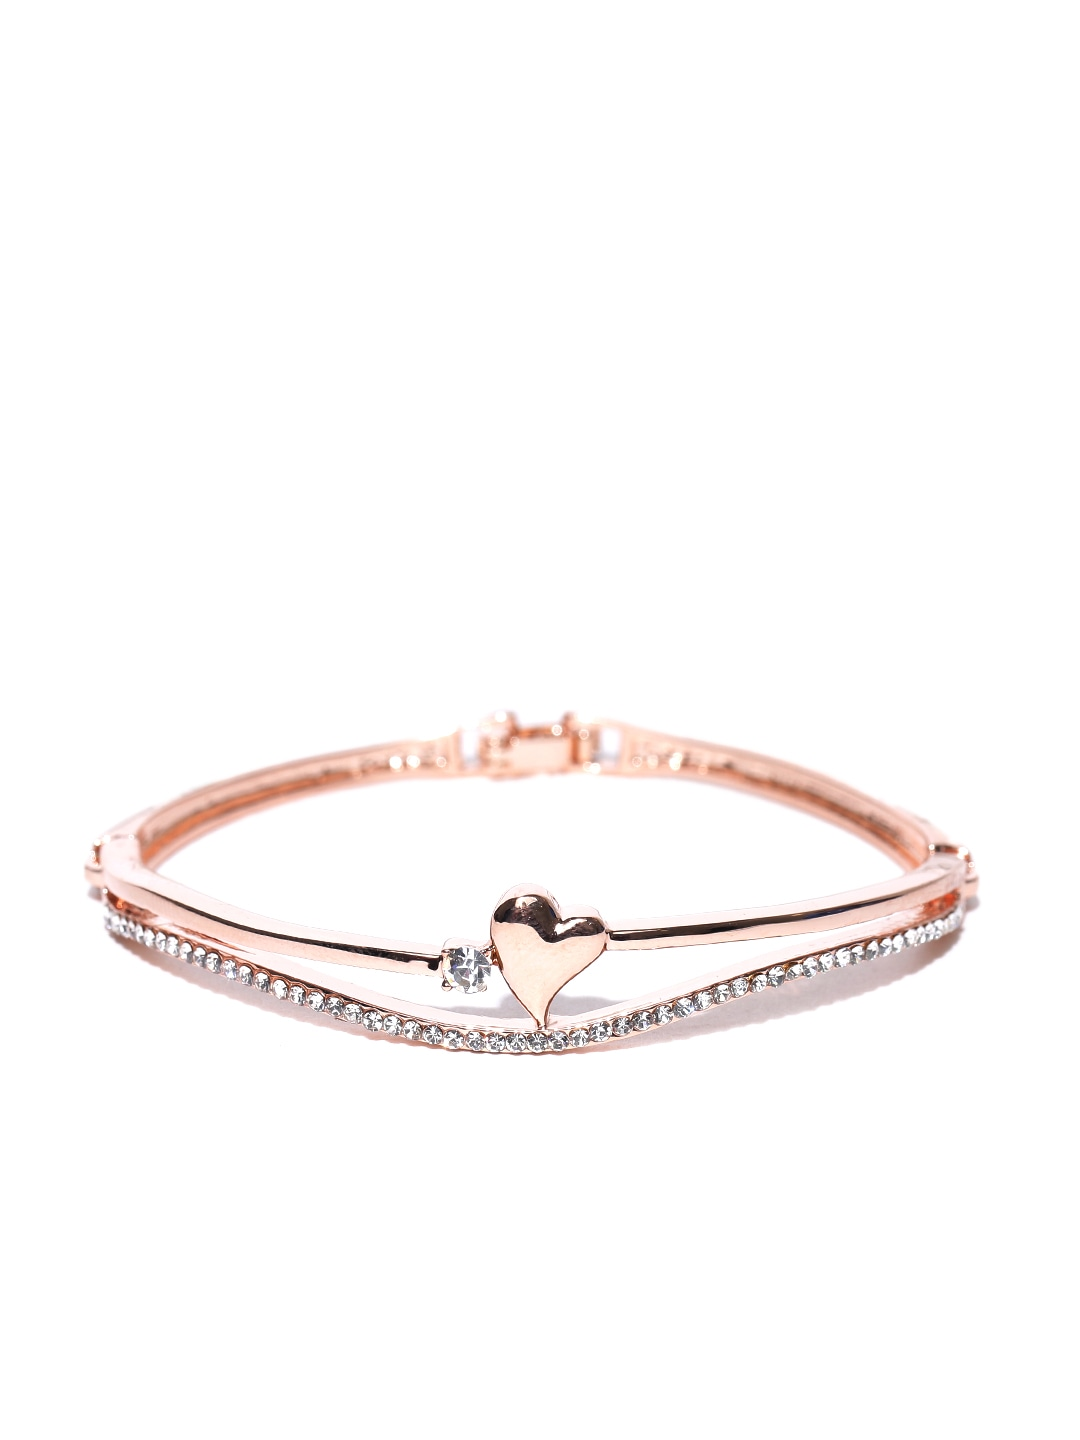 Rose Gold-Plated Handcrafted Stone-Studded Bracelet